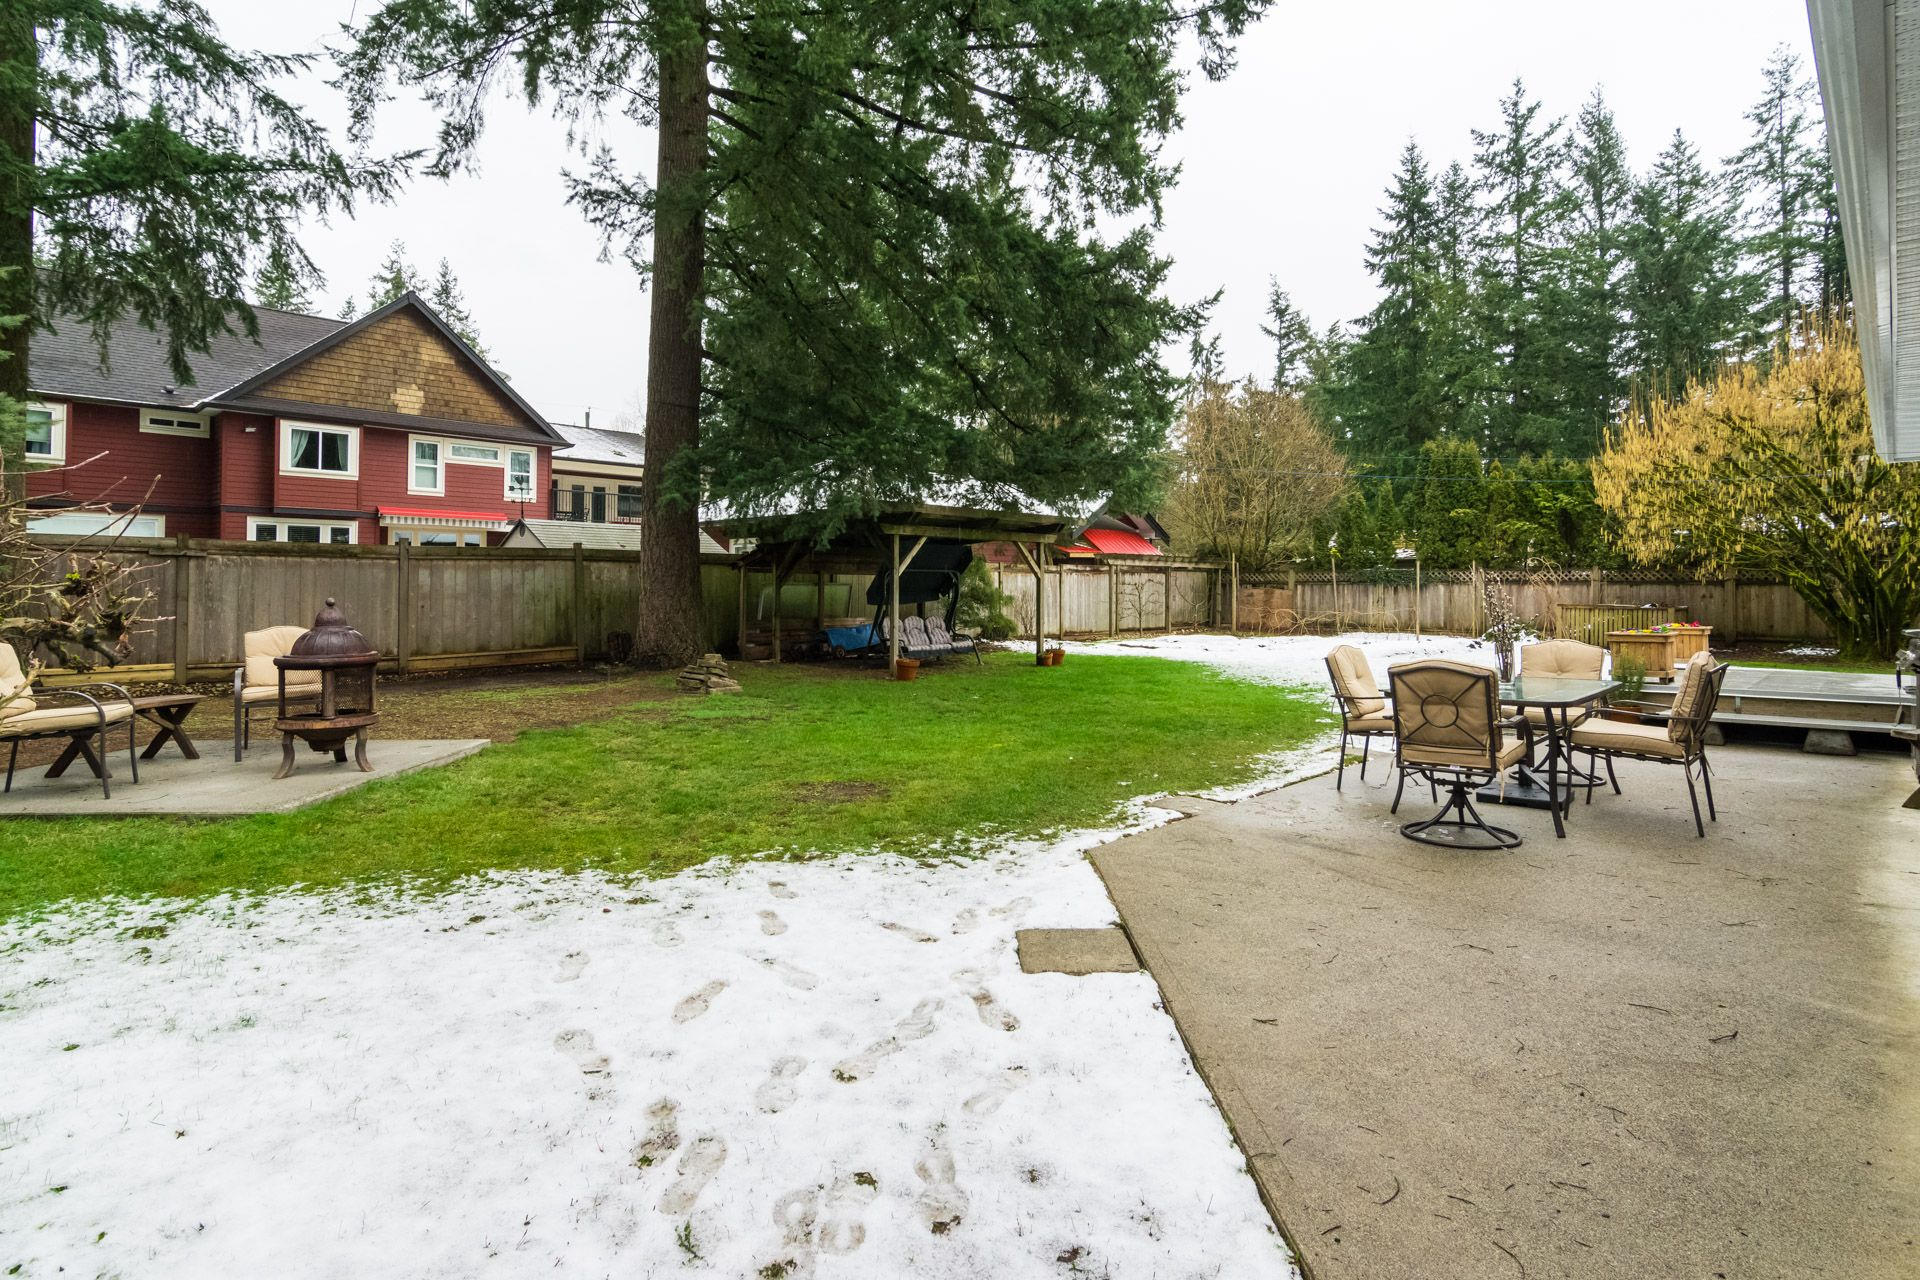 """Photo 30: Photos: 19941 37 Avenue in Langley: Brookswood Langley House for sale in """"Brookswood"""" : MLS®# R2240474"""